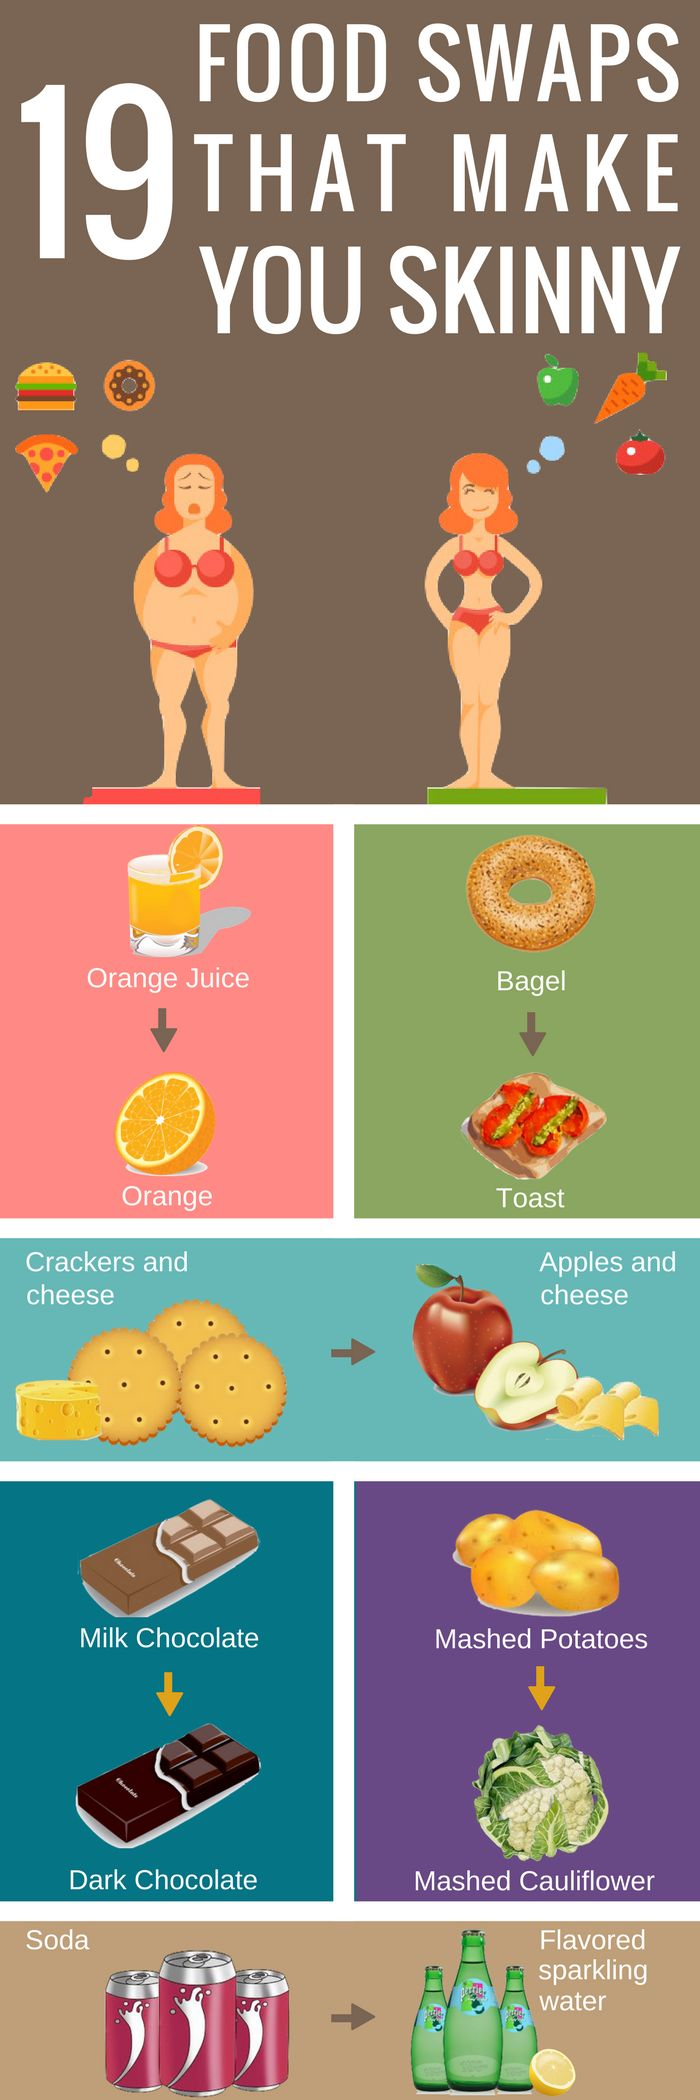 19 Food Swaps that Make You Skinny